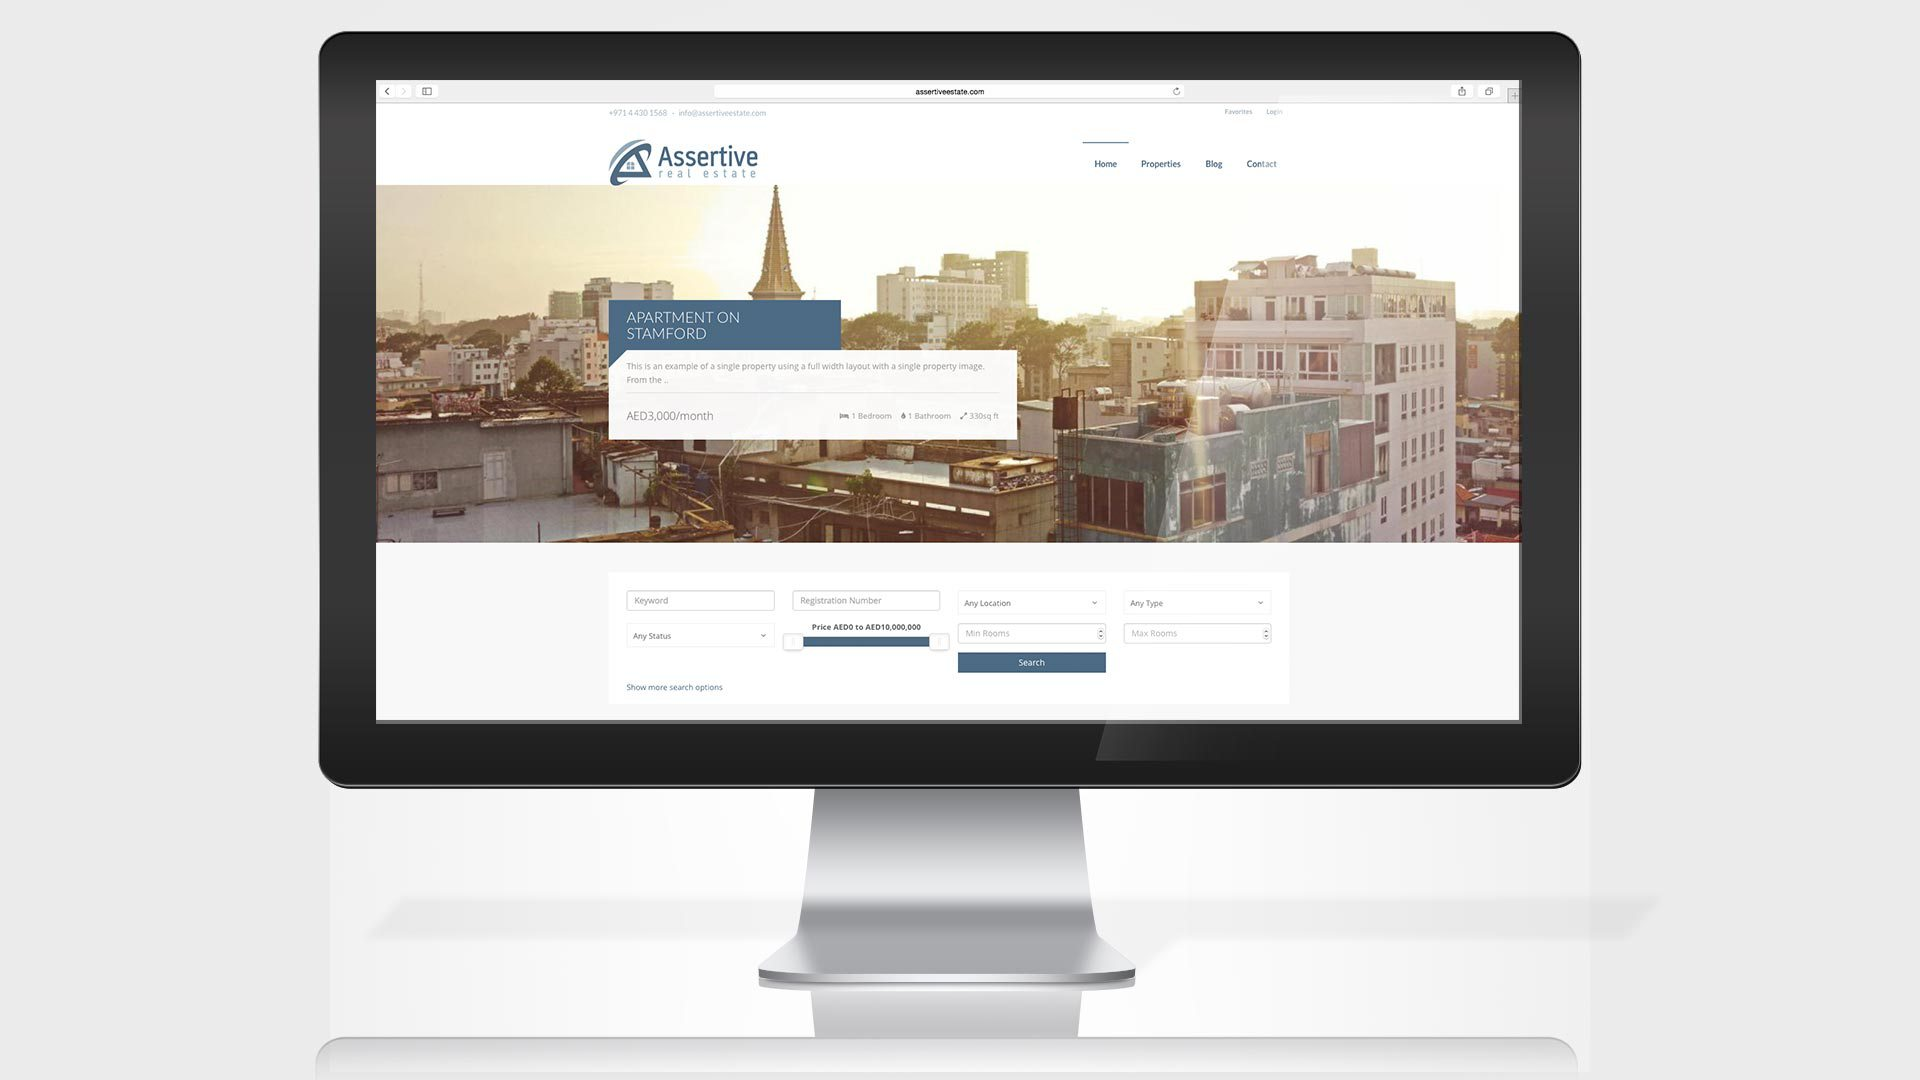 assertive-estate-website-home-page